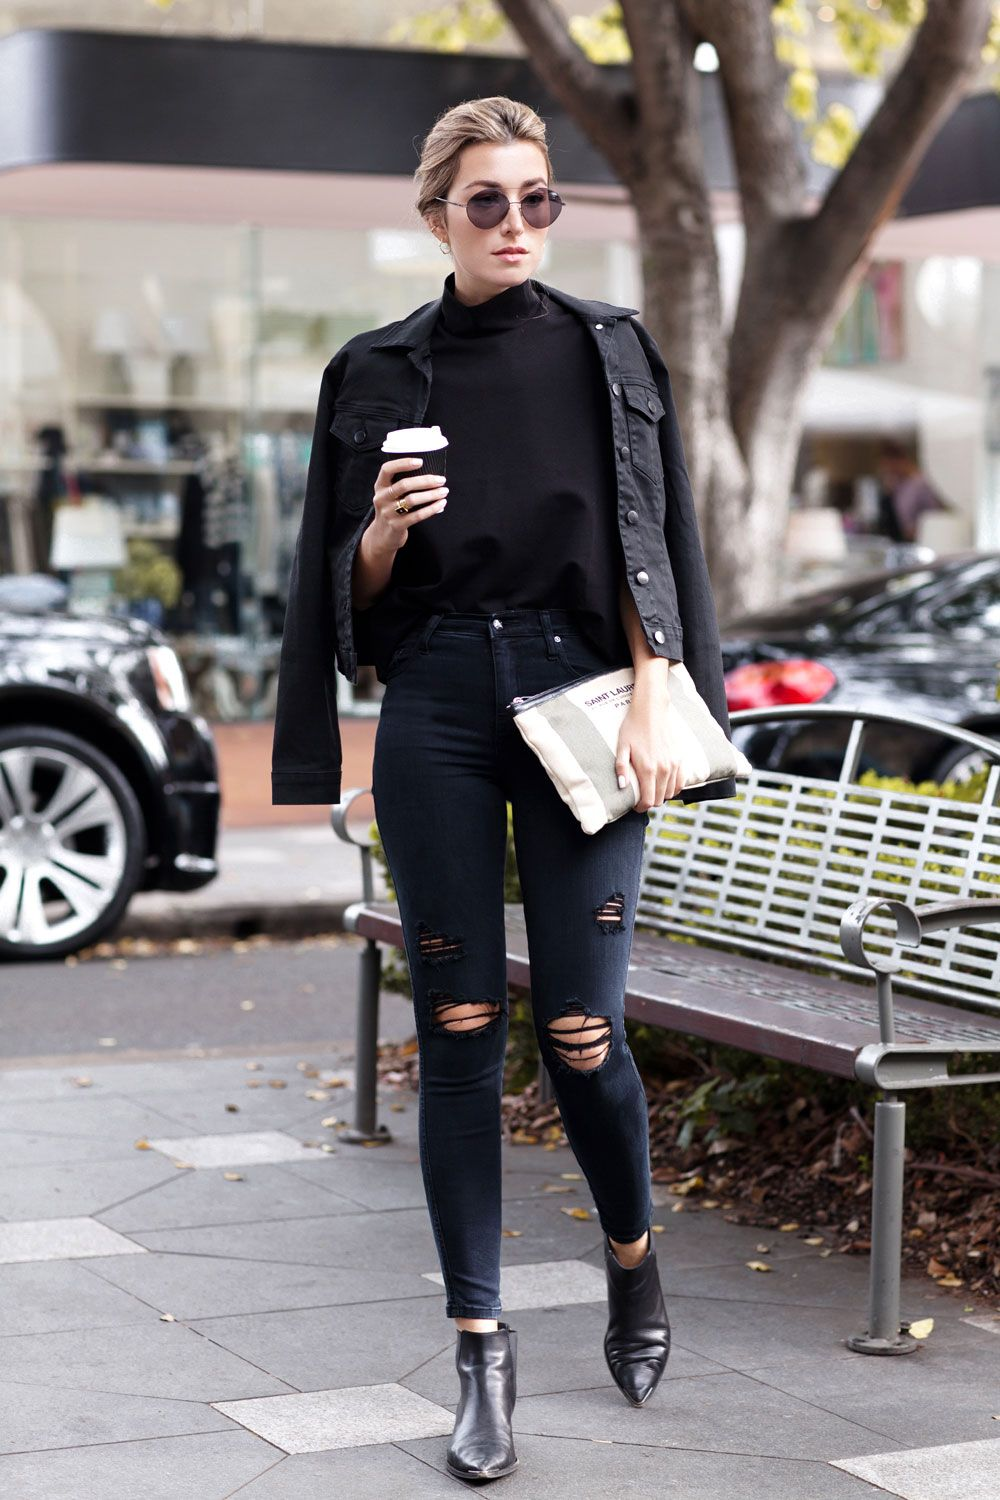 Black Jacket Outfit for Women